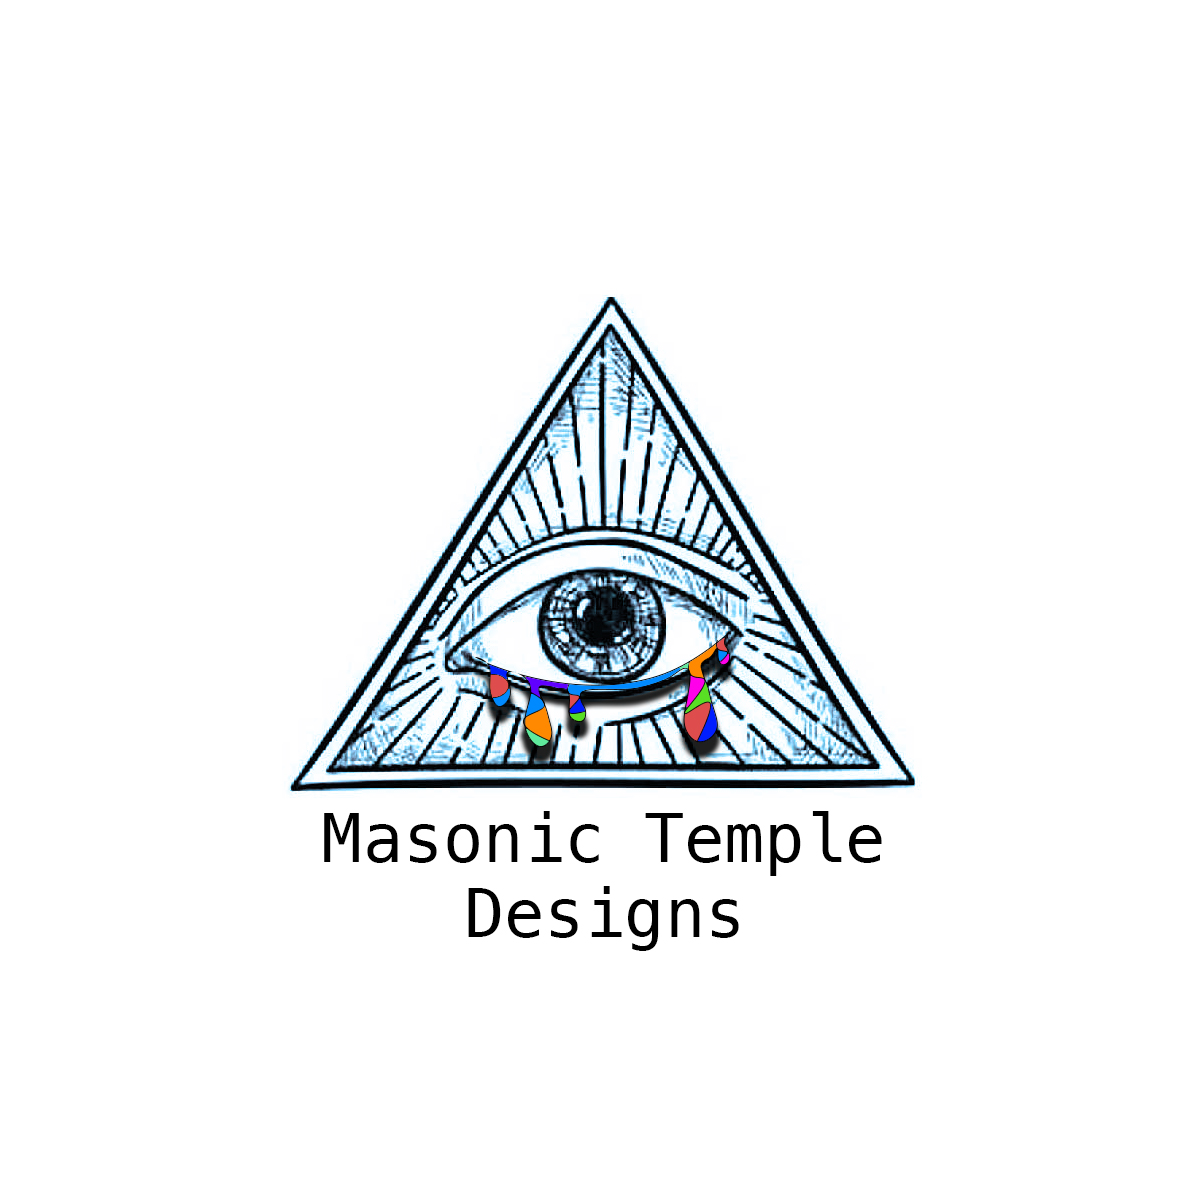 Masonic Temple Designs